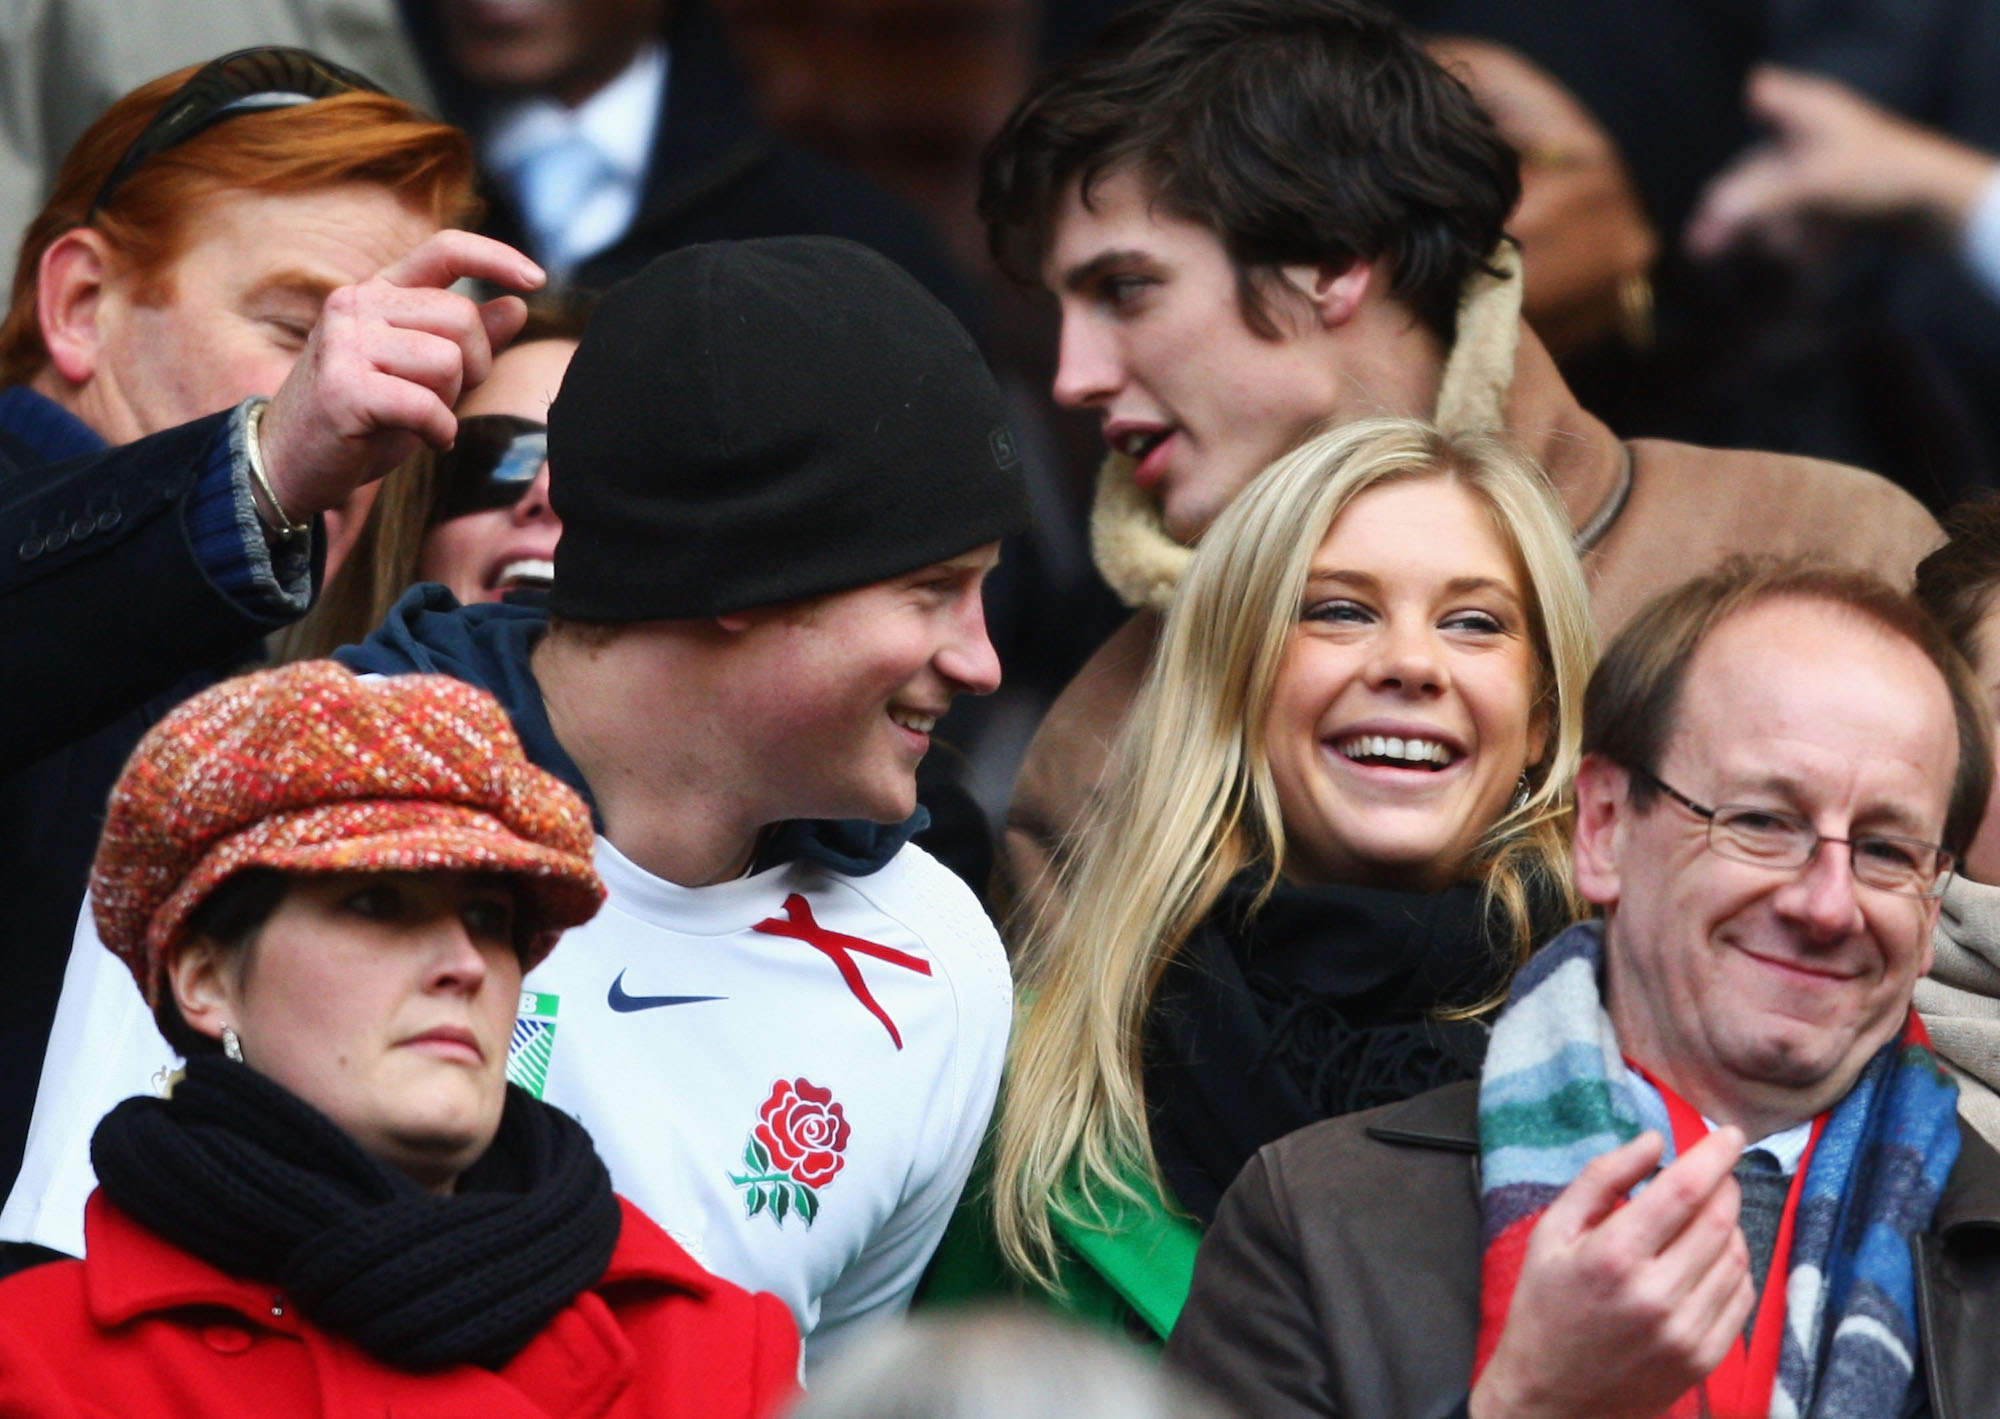 Prince Harry and Chelsy Davy attending a game of the England national rugby union team